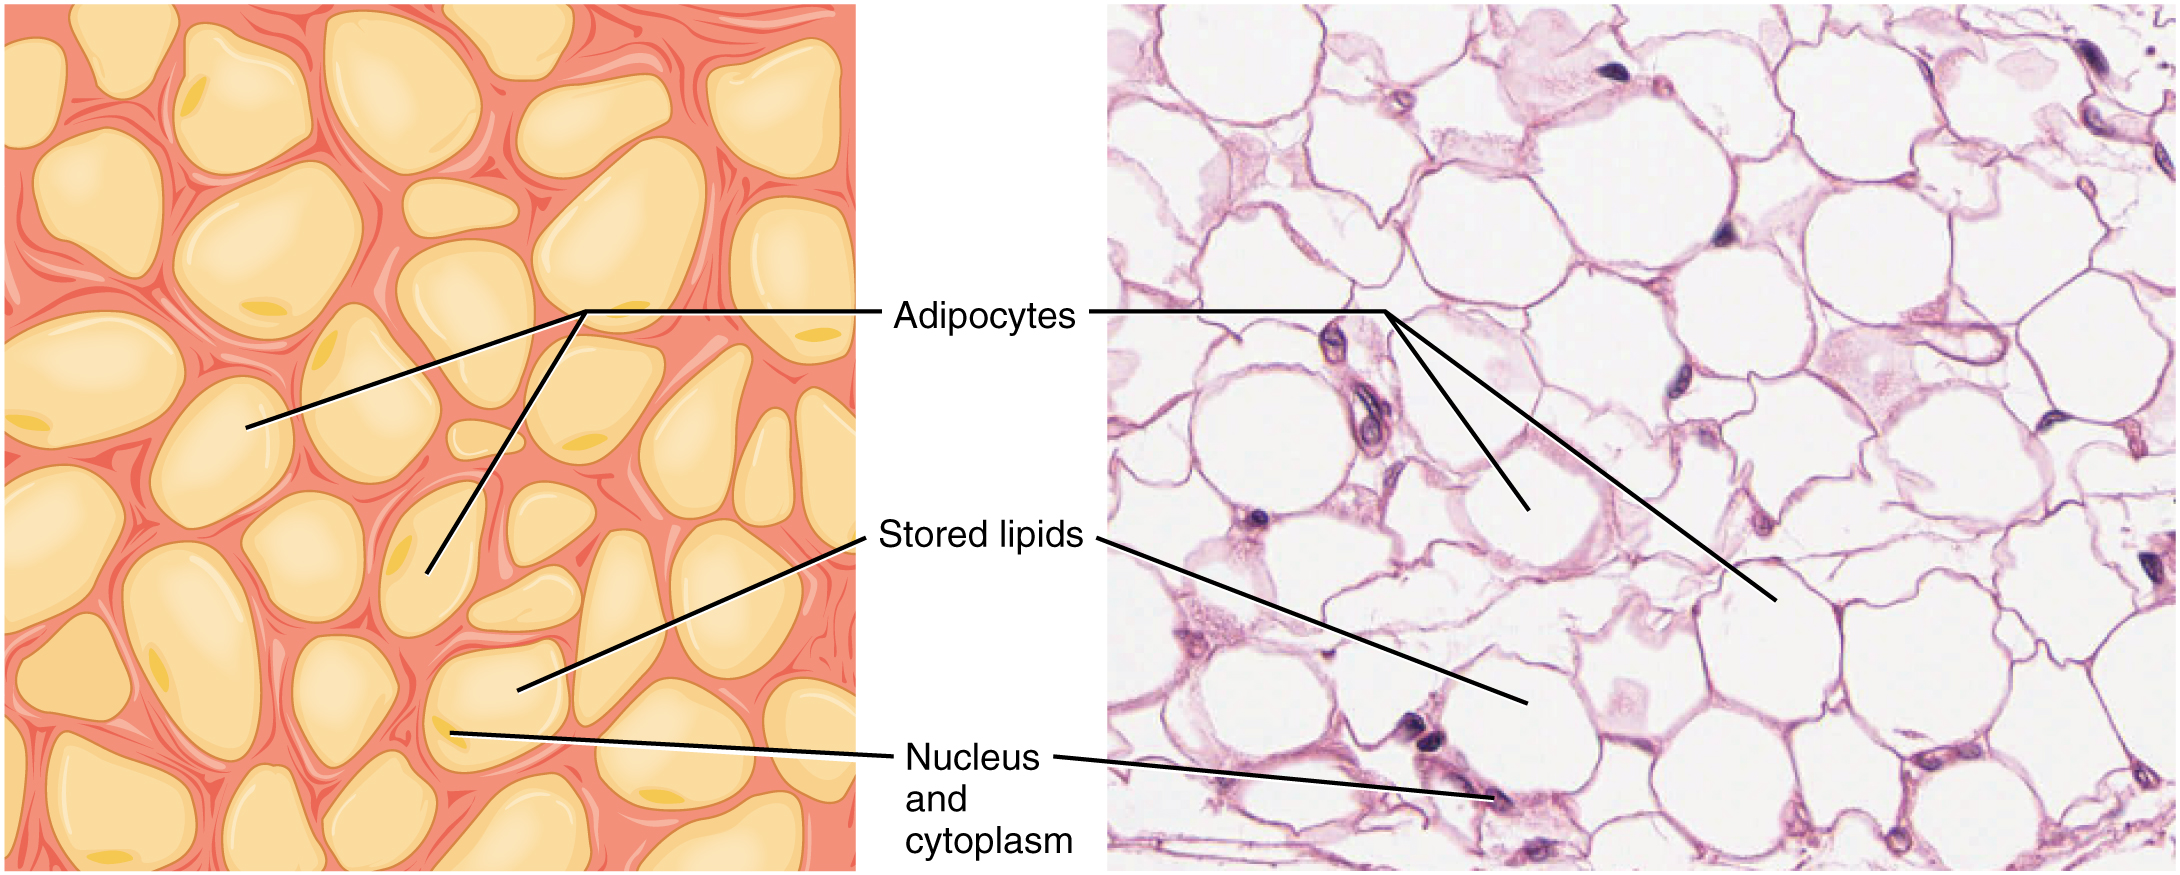 Image A shows a collection of yellow adipocytes that do not have a consistent shape or size, however, most have the general appearance of a kernel of corn with a wide end that tapers to a point. Each adipocyte has a nucleus occupying a small area on one side of the cell. Nothing else is visible within the cells. Image B shows a micrograph of adipose tissue. Here, the adipocytes are stained purple. However, only their edges and their nuclei stain, giving the adipose tissue a honeycomb appearance. The adipocytes in the micrograph are large and round, but still show a diversity of shapes and sizes. The nucleus appears as a dark staining area very close to the cell membrane.